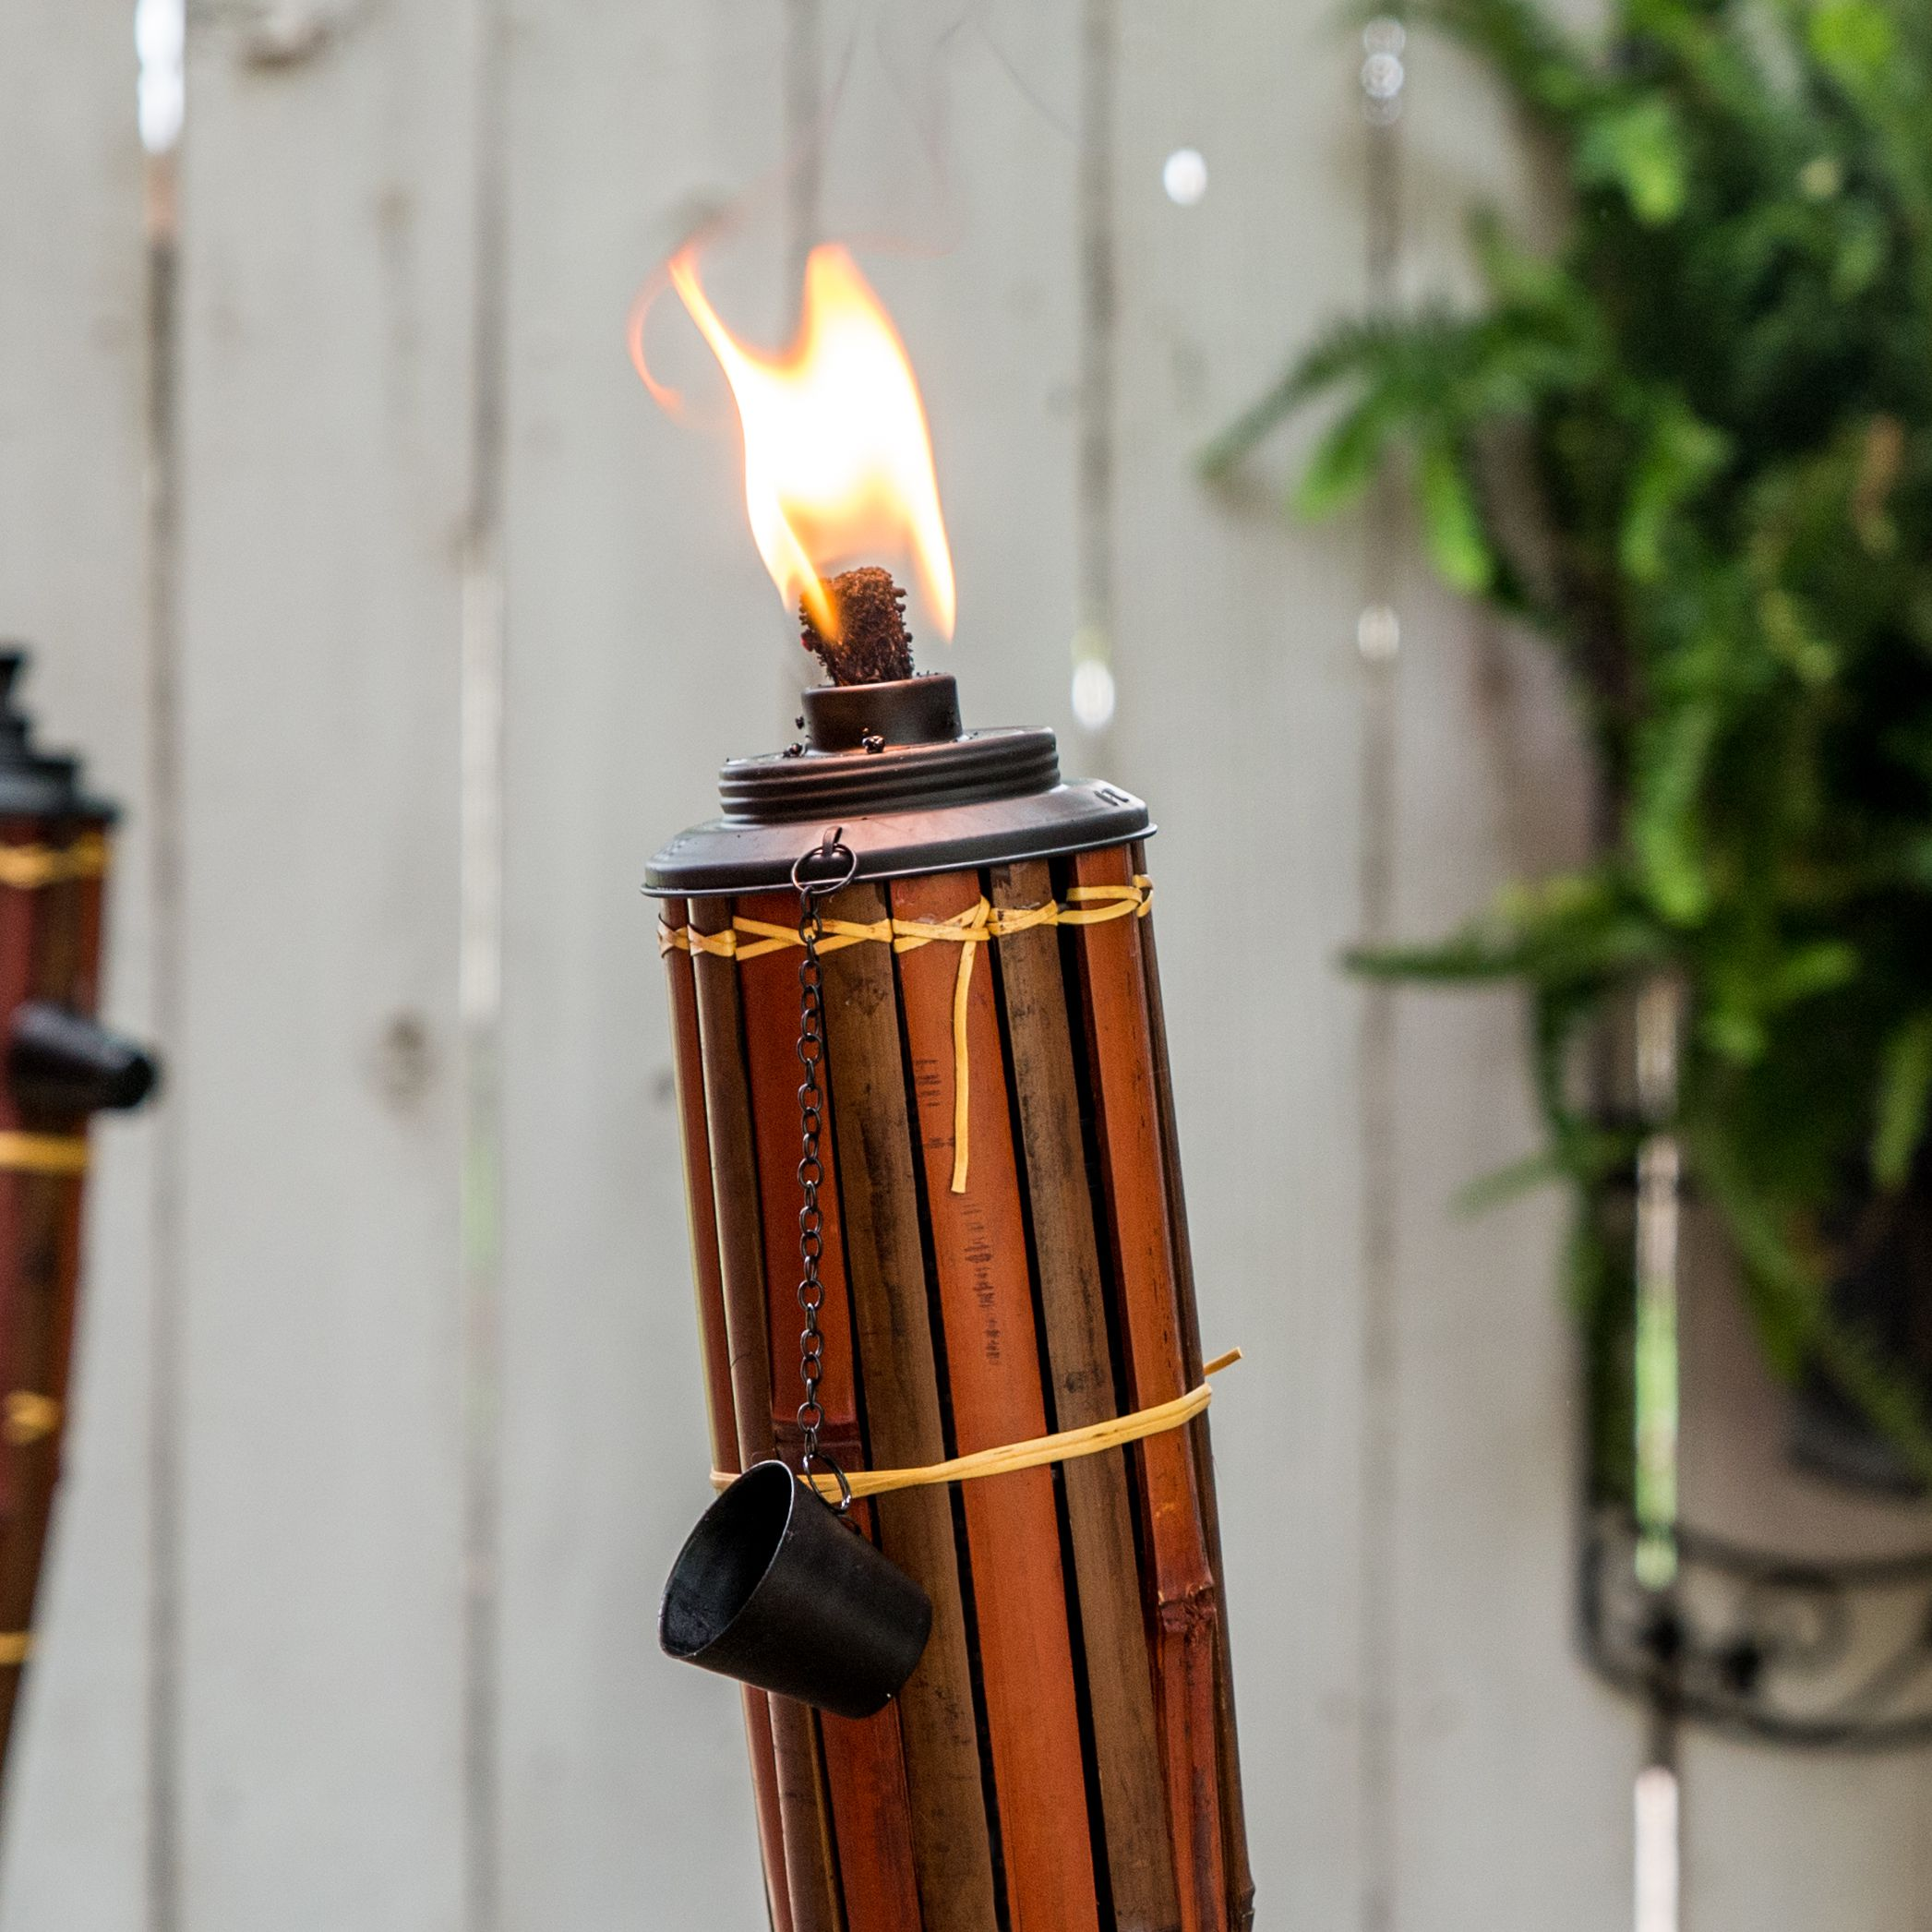 How To Use Tiki Torches Light Up The